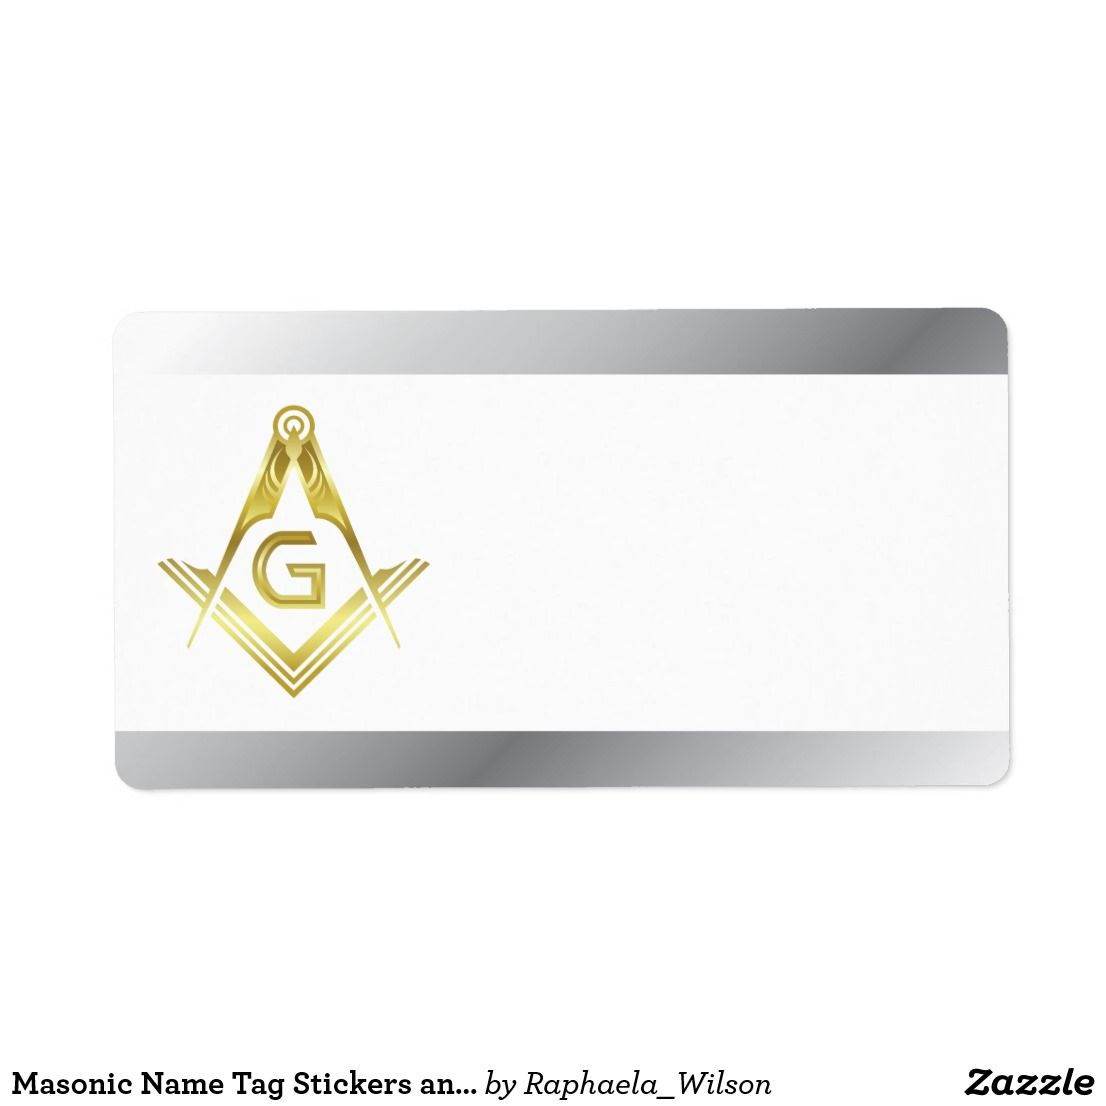 Masonic Name Tag Stickers and Labels   Custom Masonic Gifts ...